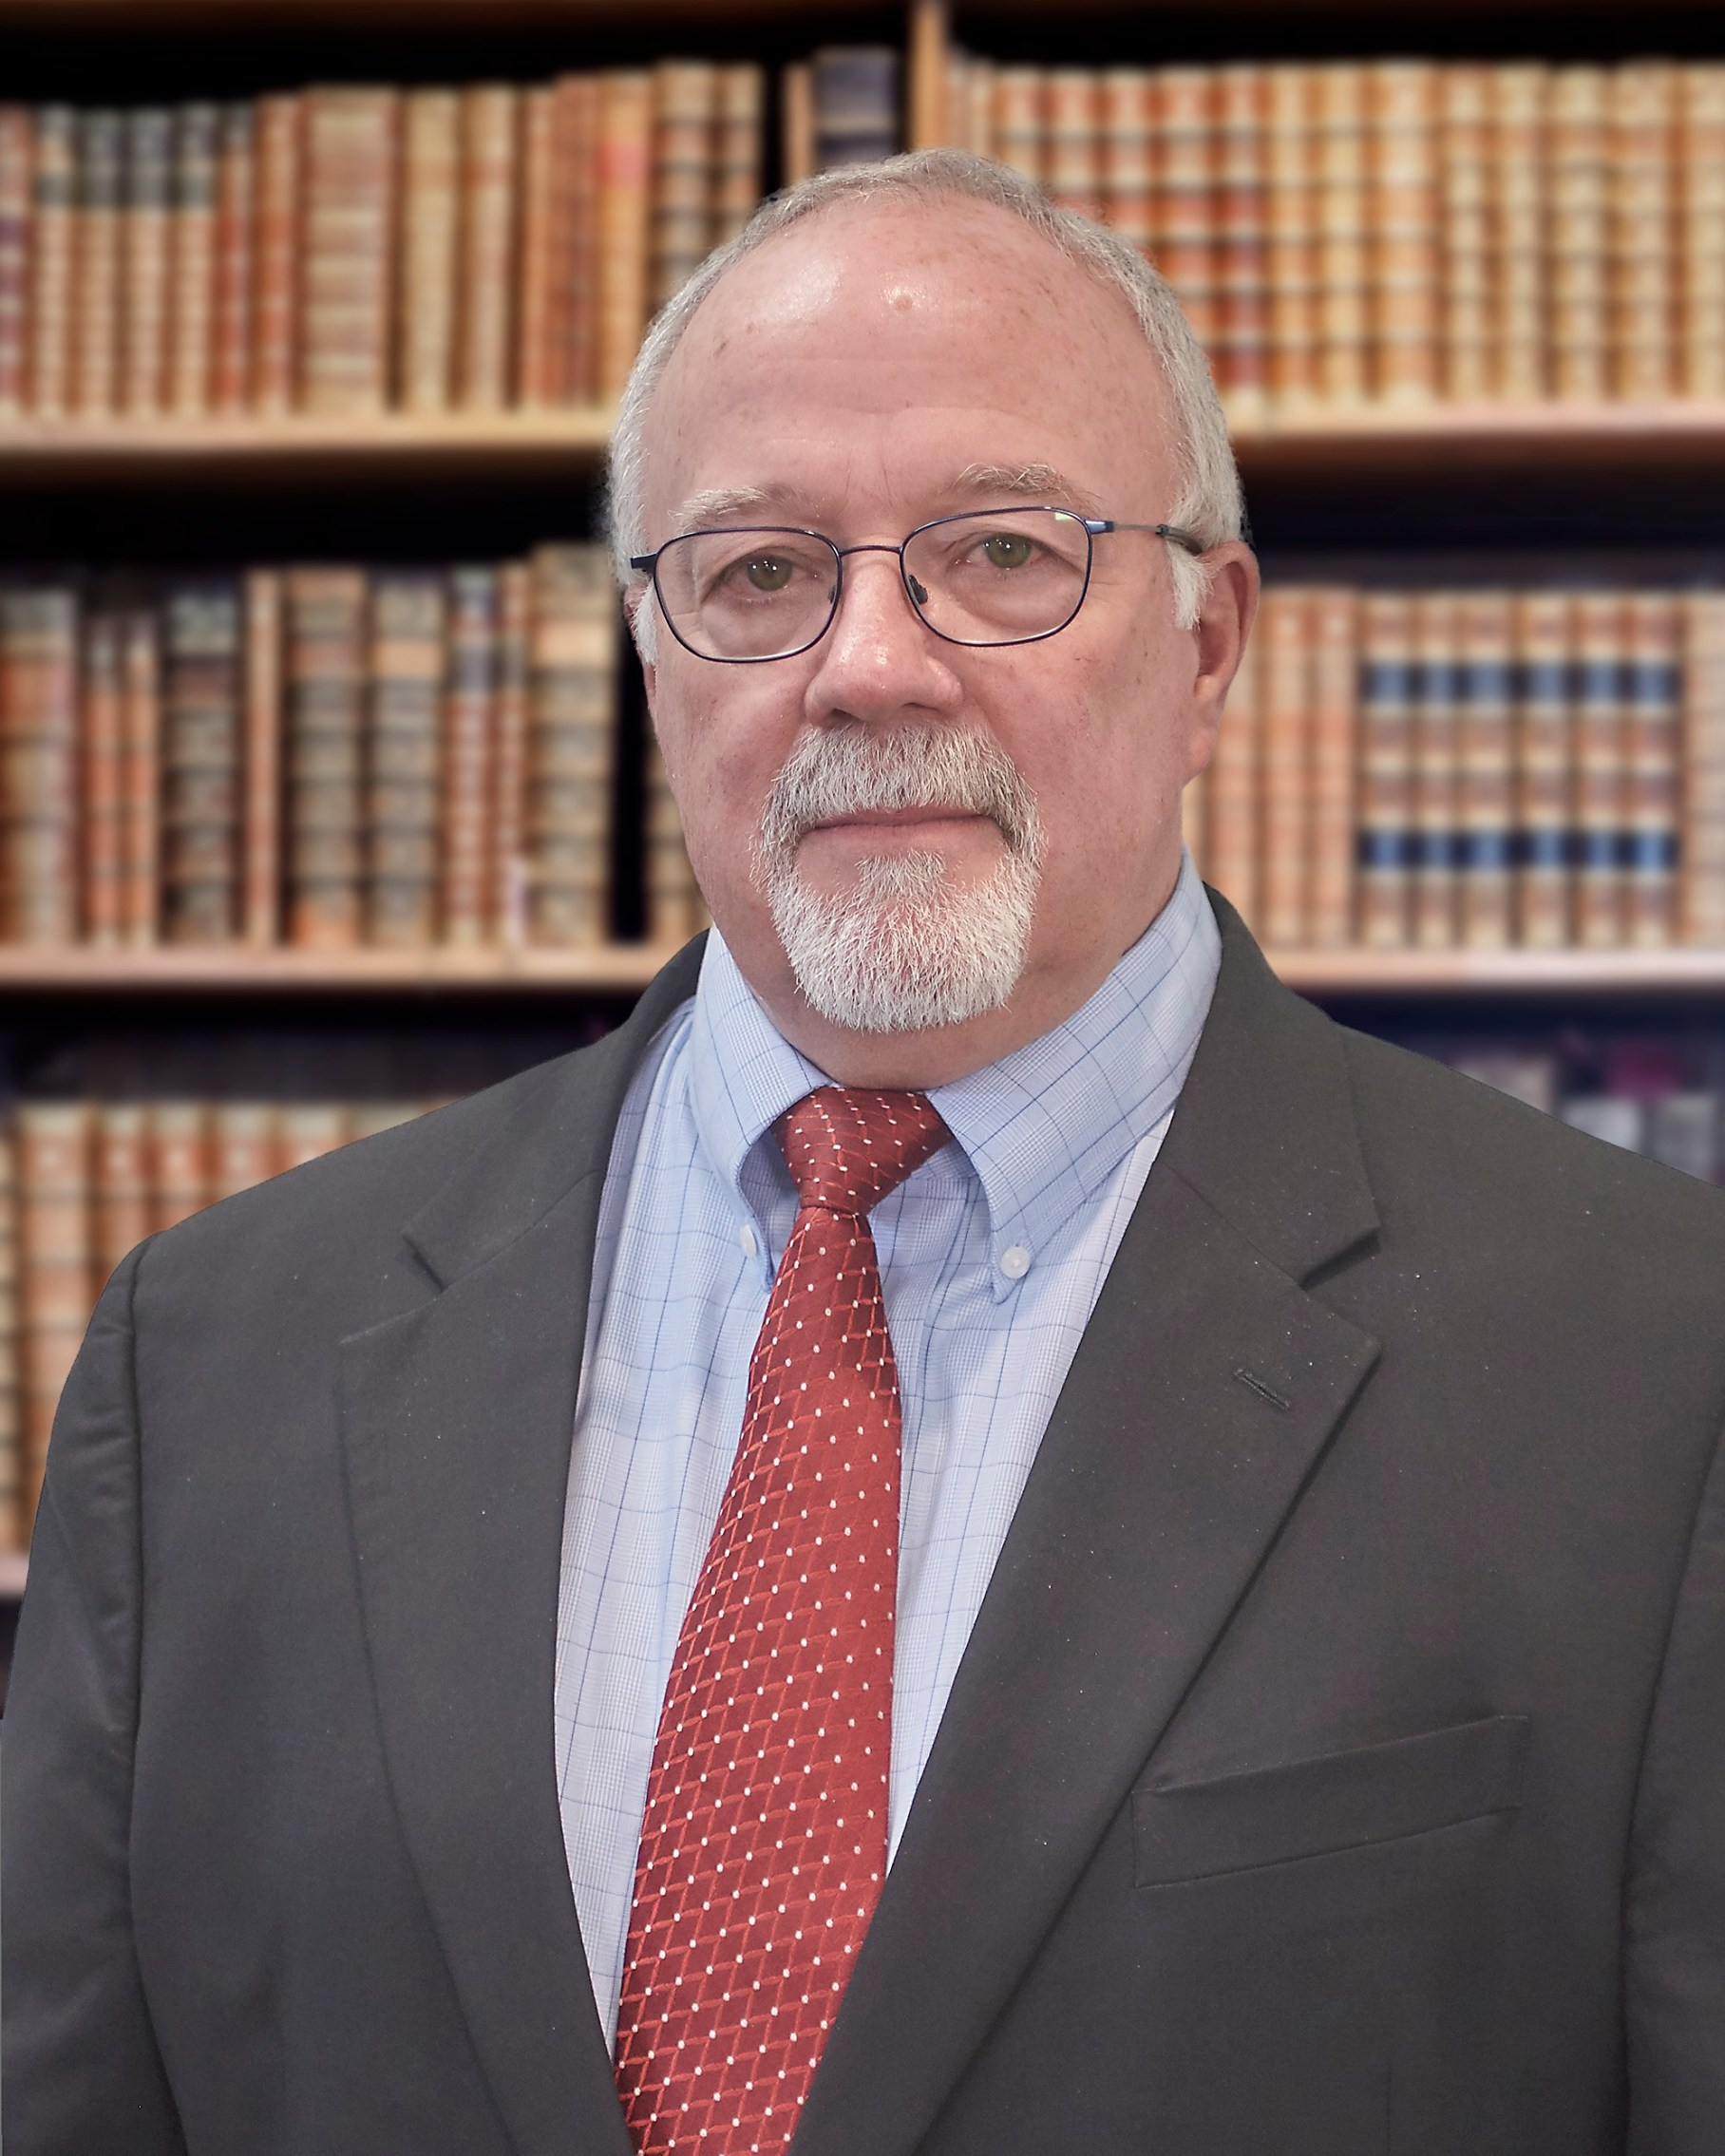 Dale D. Quigley